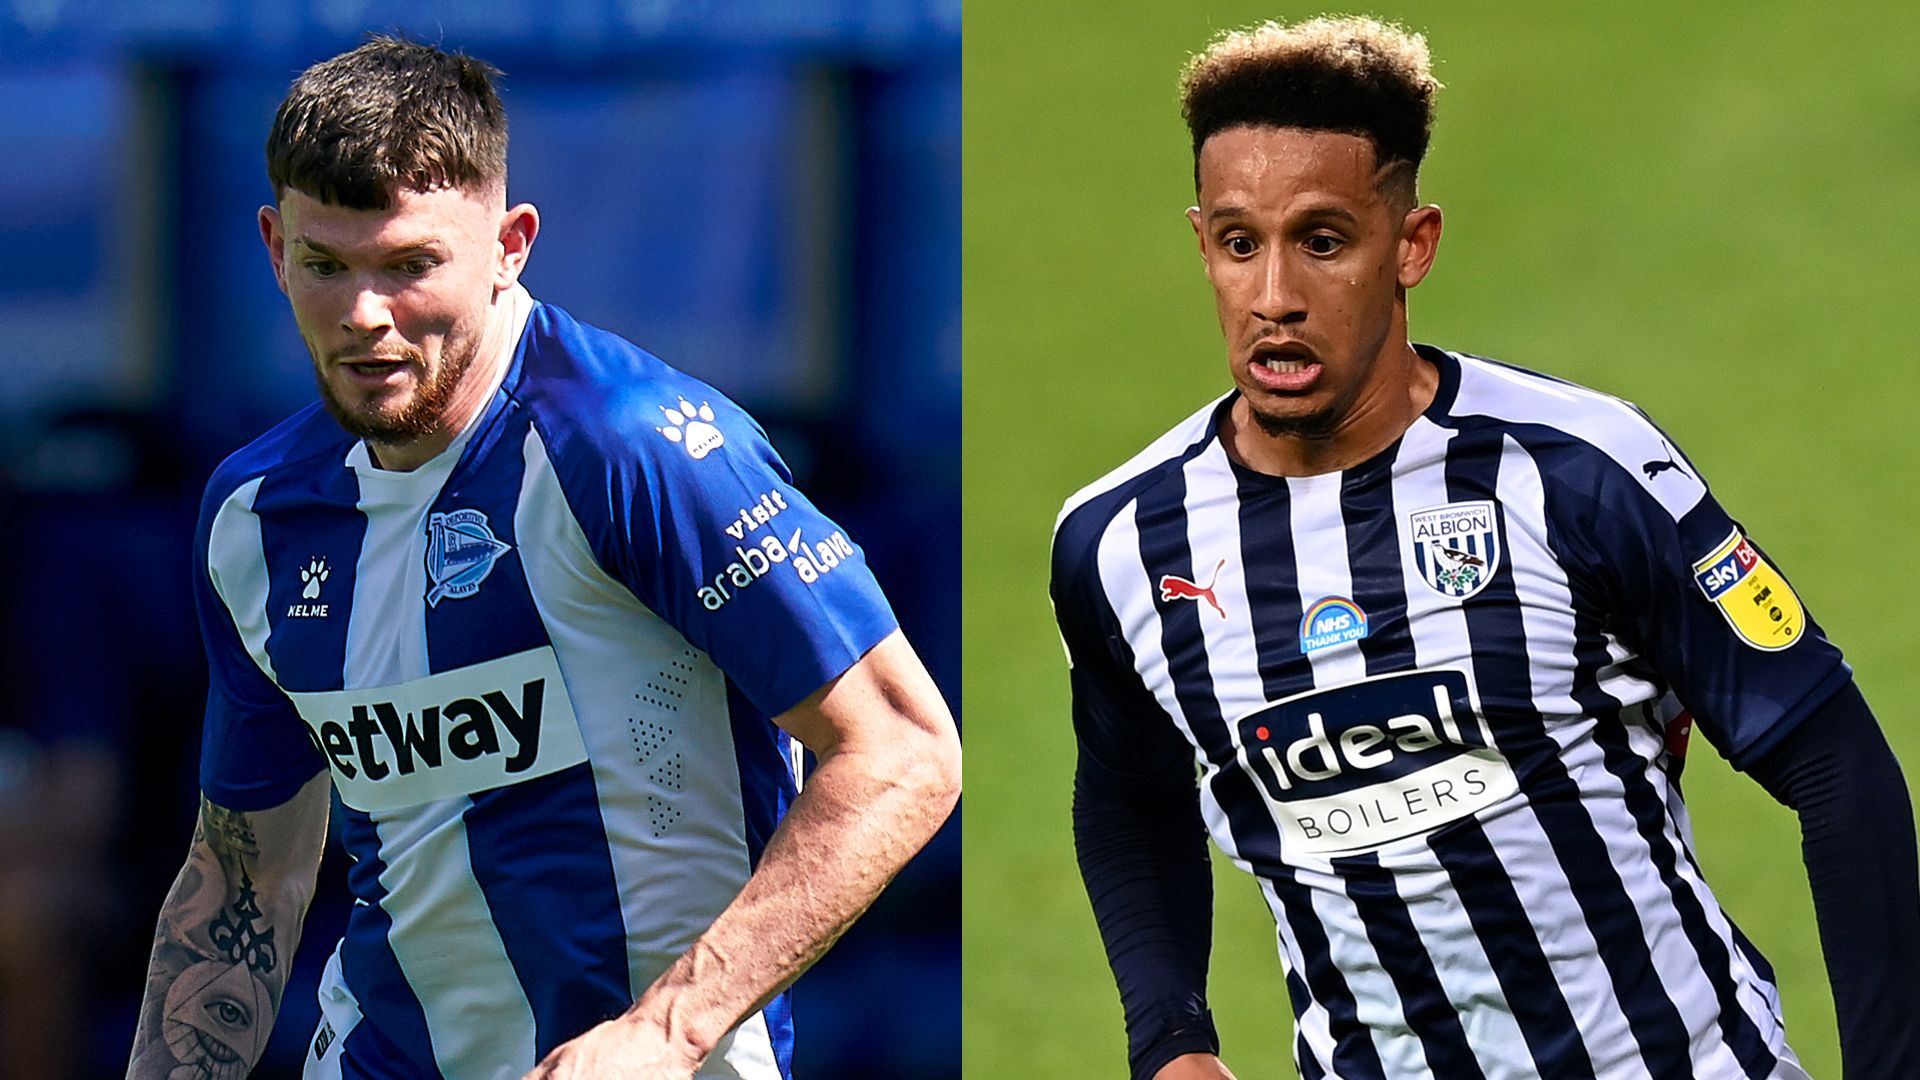 Burke joins Sheff Utd, Robinson moves to WBA